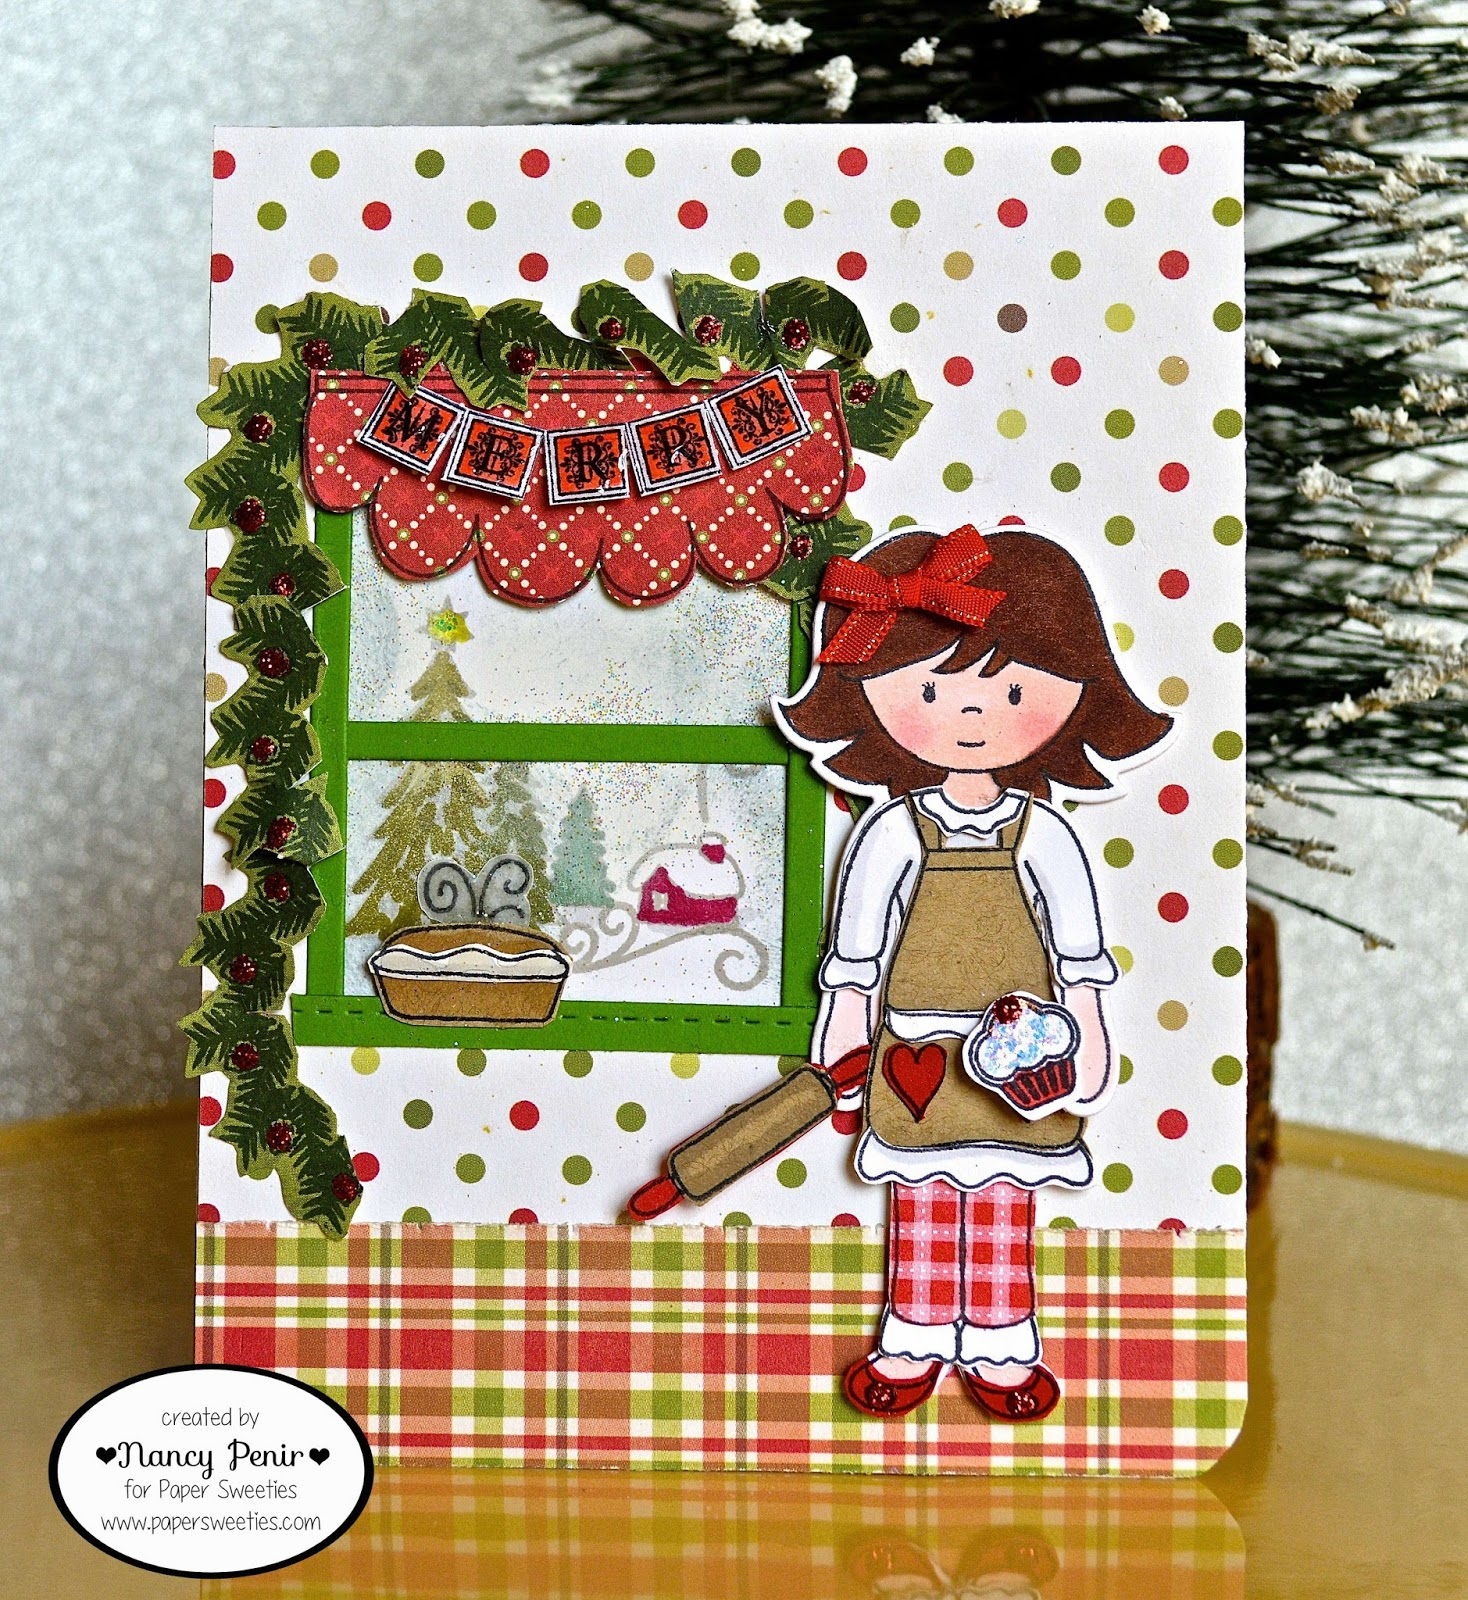 Happy Holidays Inspiration: Artful Notions: Paper Sweeties December Inspiration